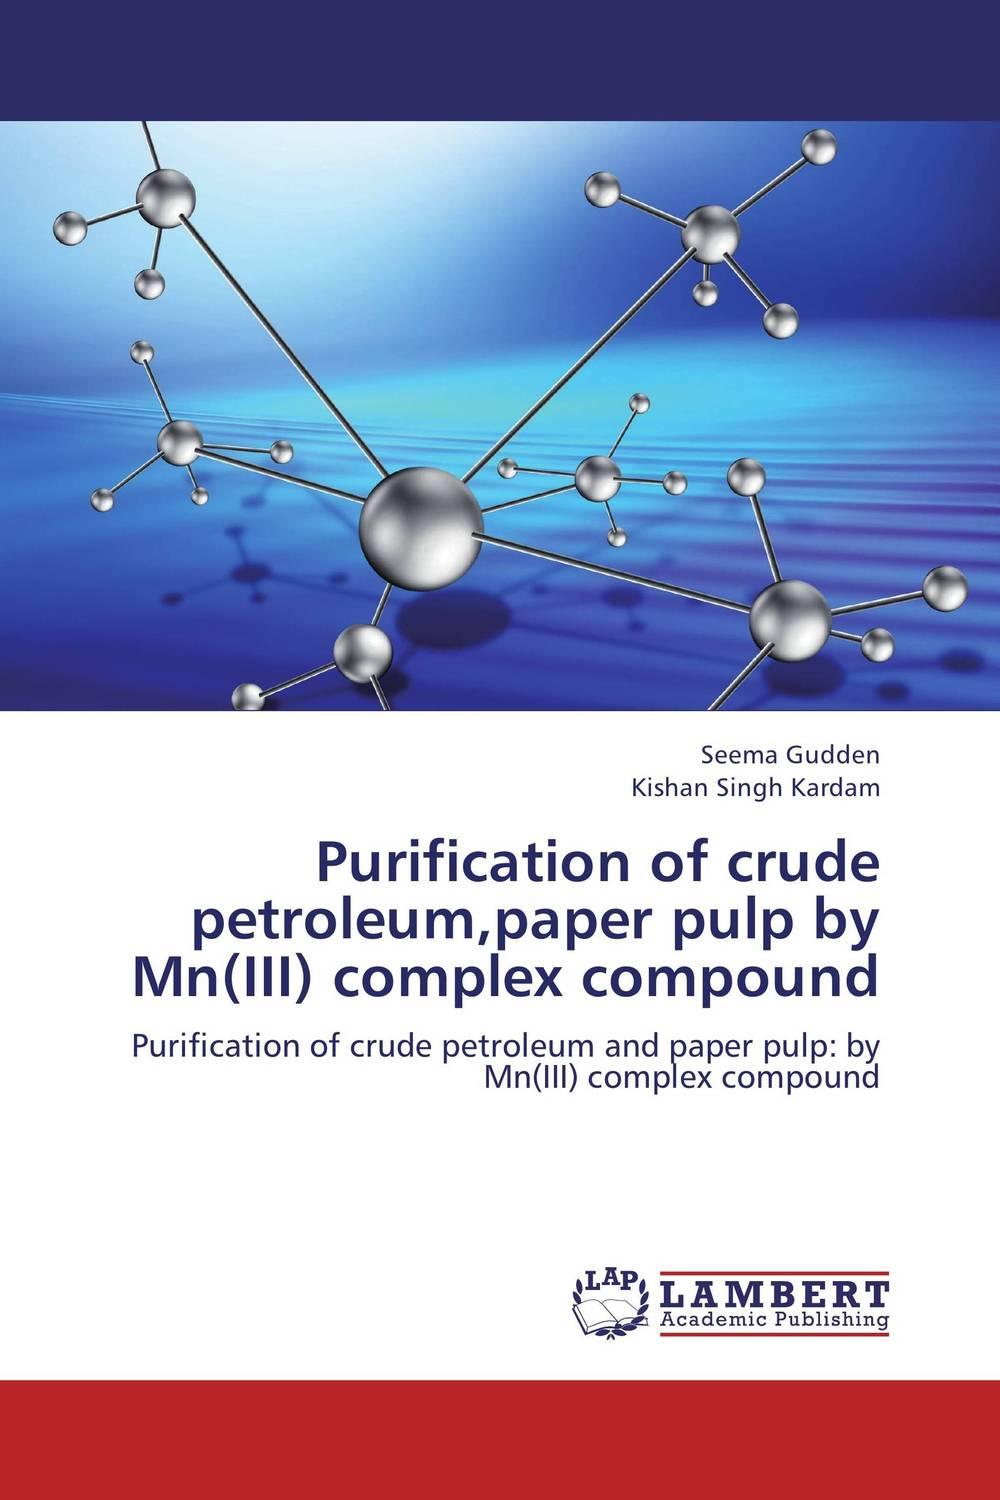 Purification of crude petroleum,paper pulp by Mn(III) complex compound dearomatization of crude oil